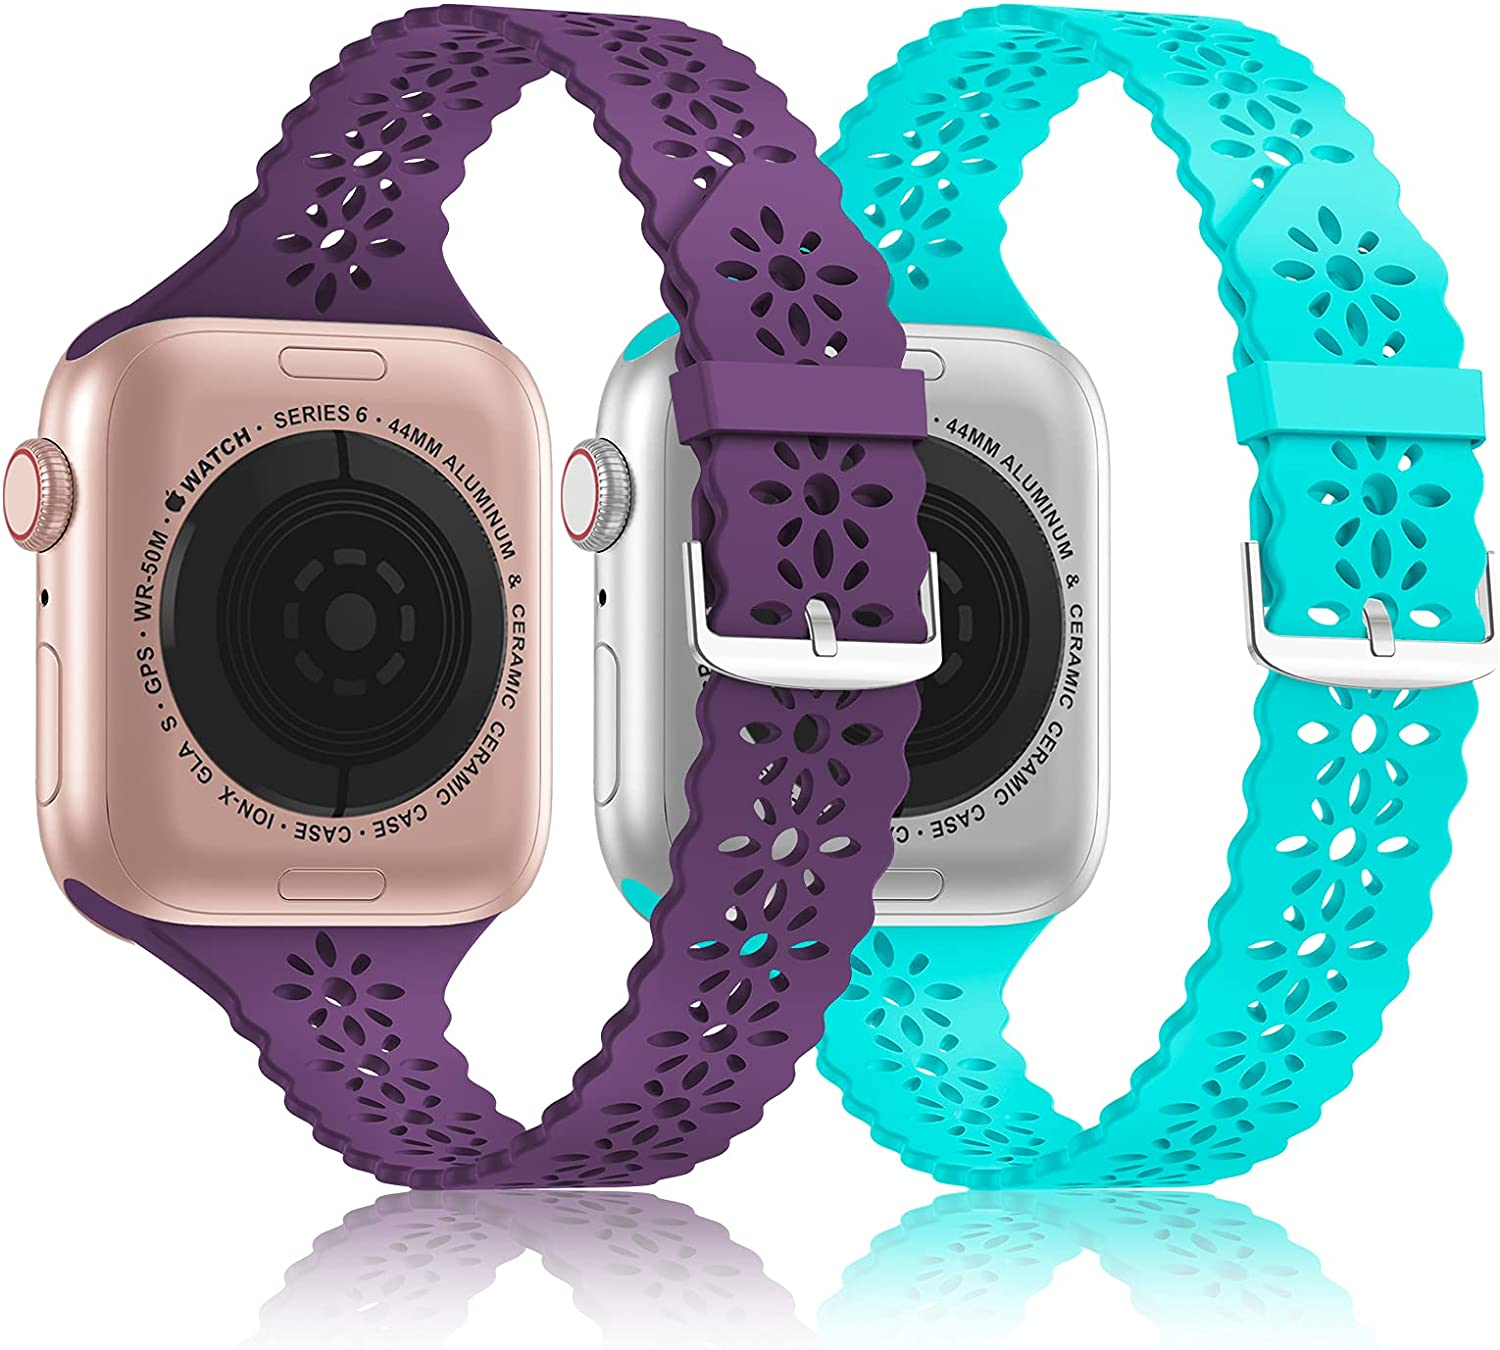 Quantity limited Seizehe 2 Pack Great interest Lace Slim Silicone With Bands Compatible Wa Apple